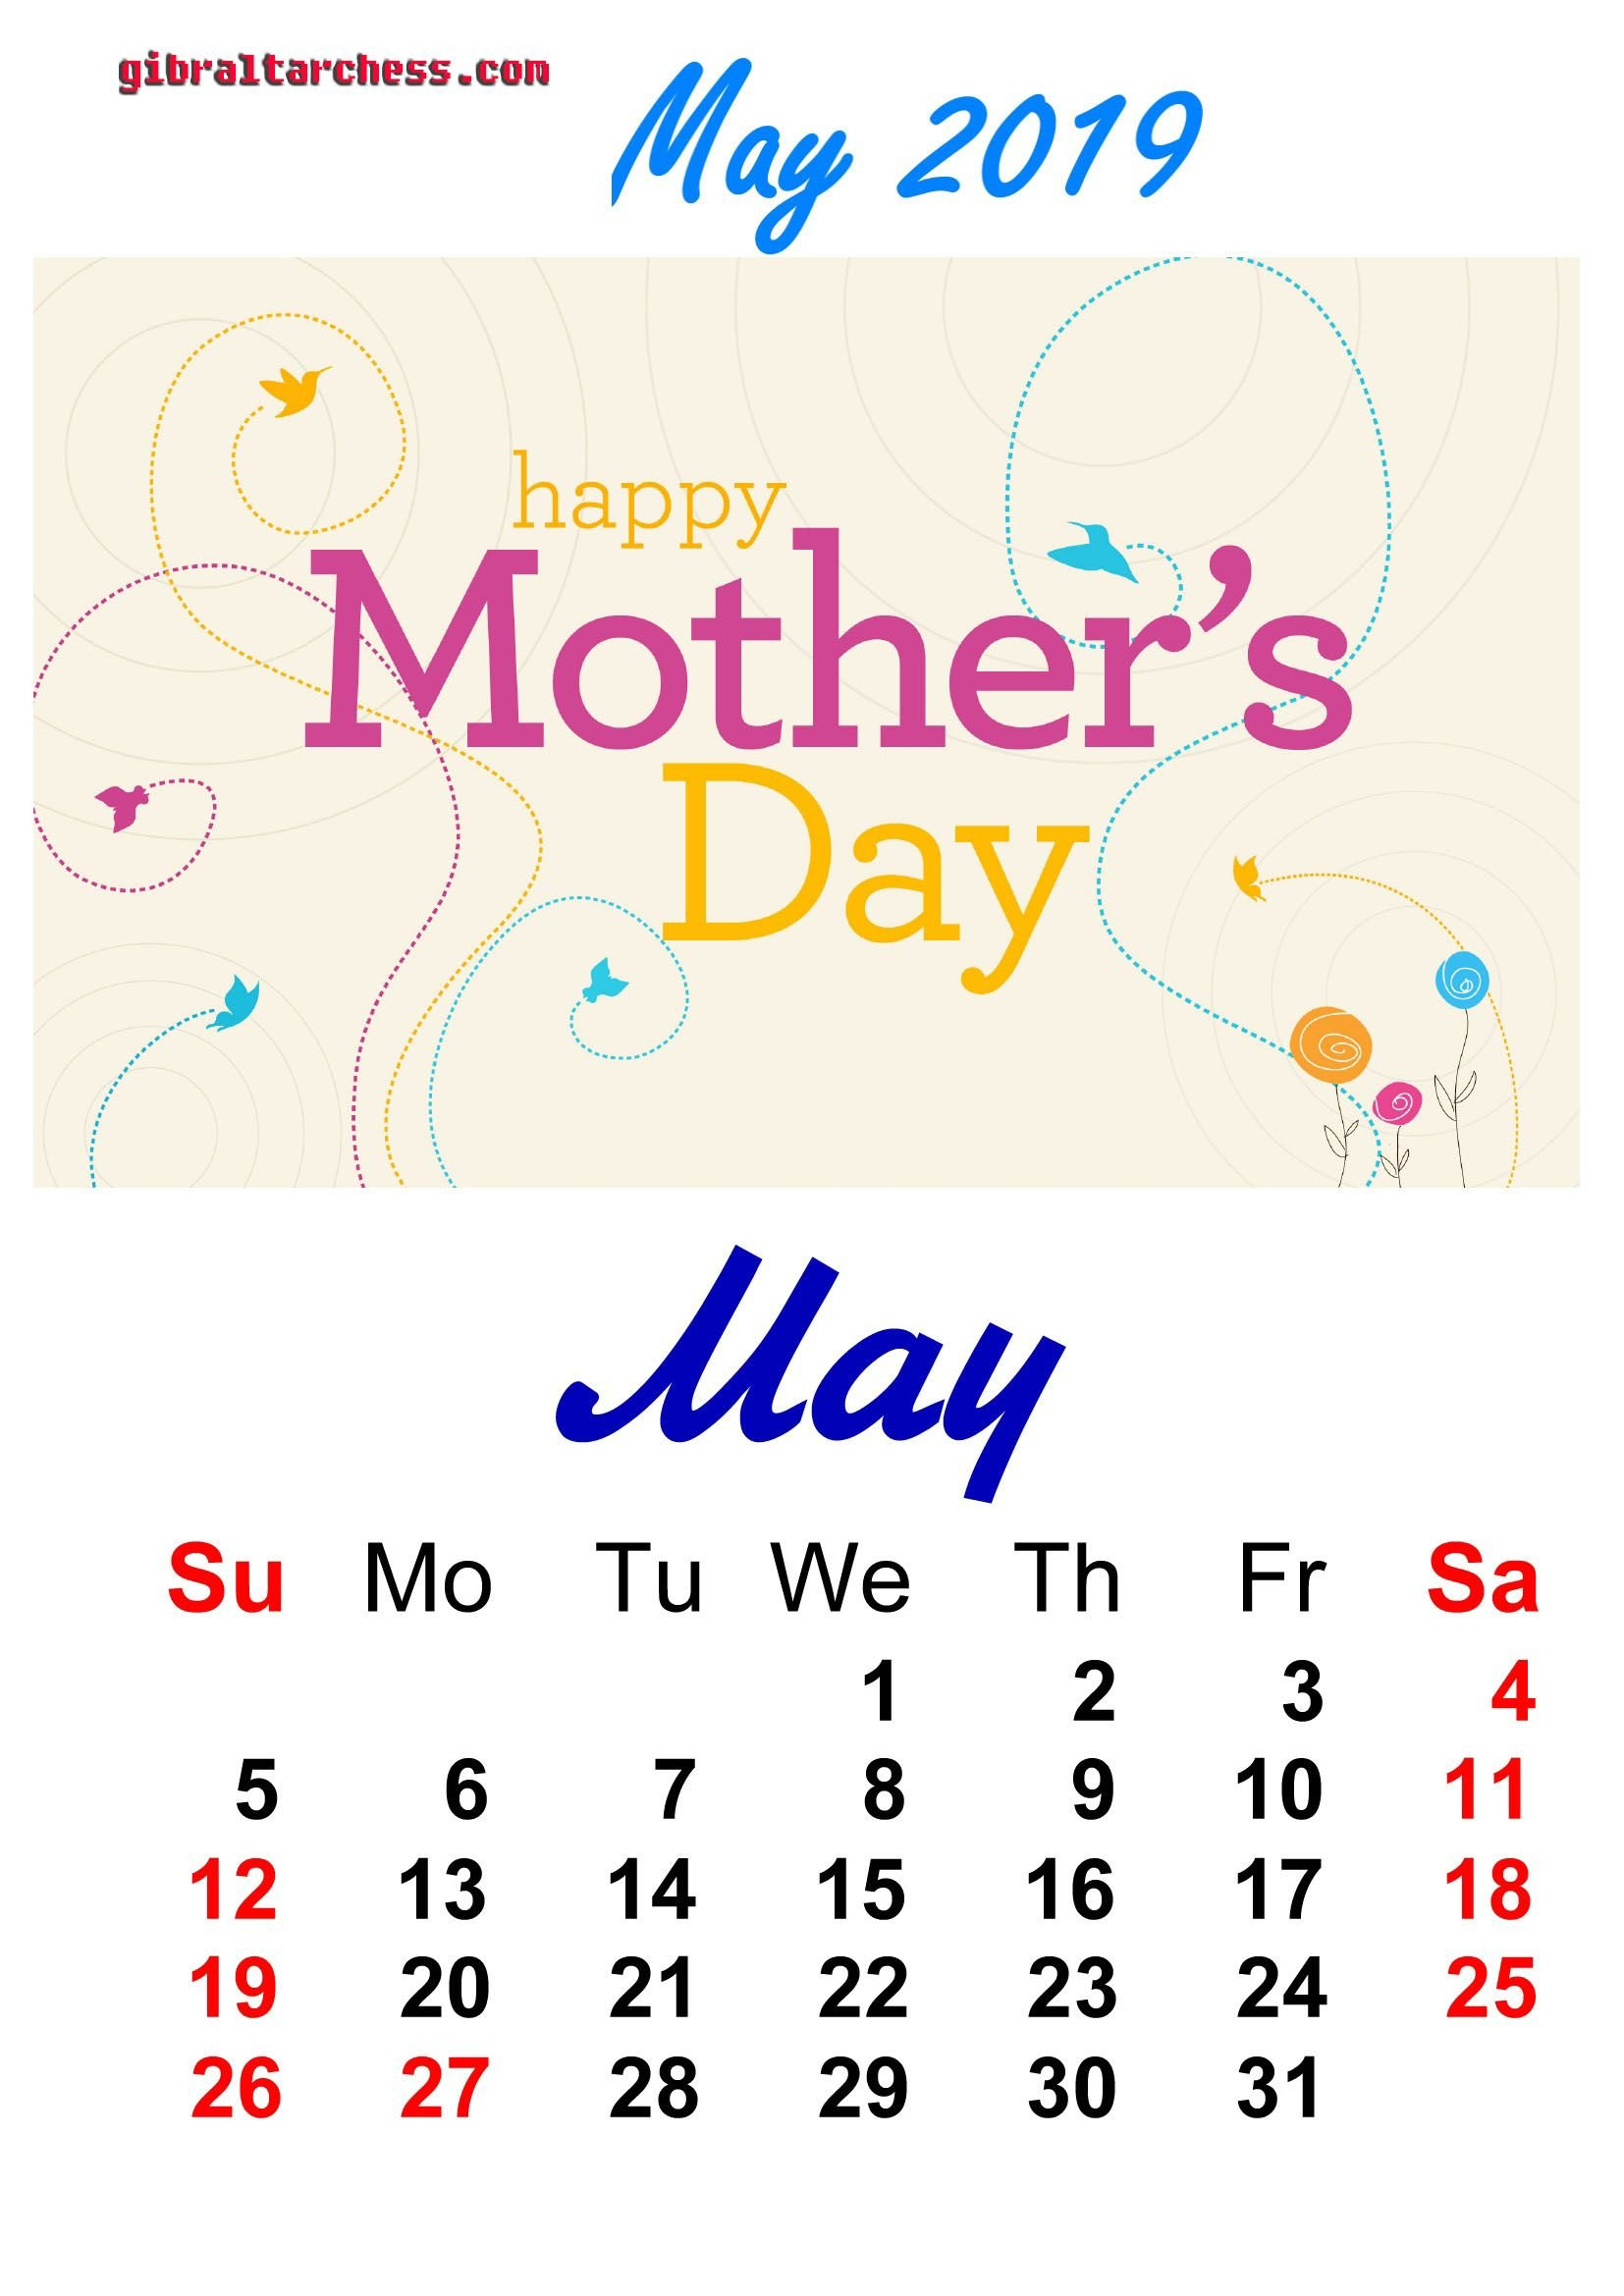 7 May 2019 Holidays Calendar Happy Mothers Day | Calendar Template May 7 2019 Calendar